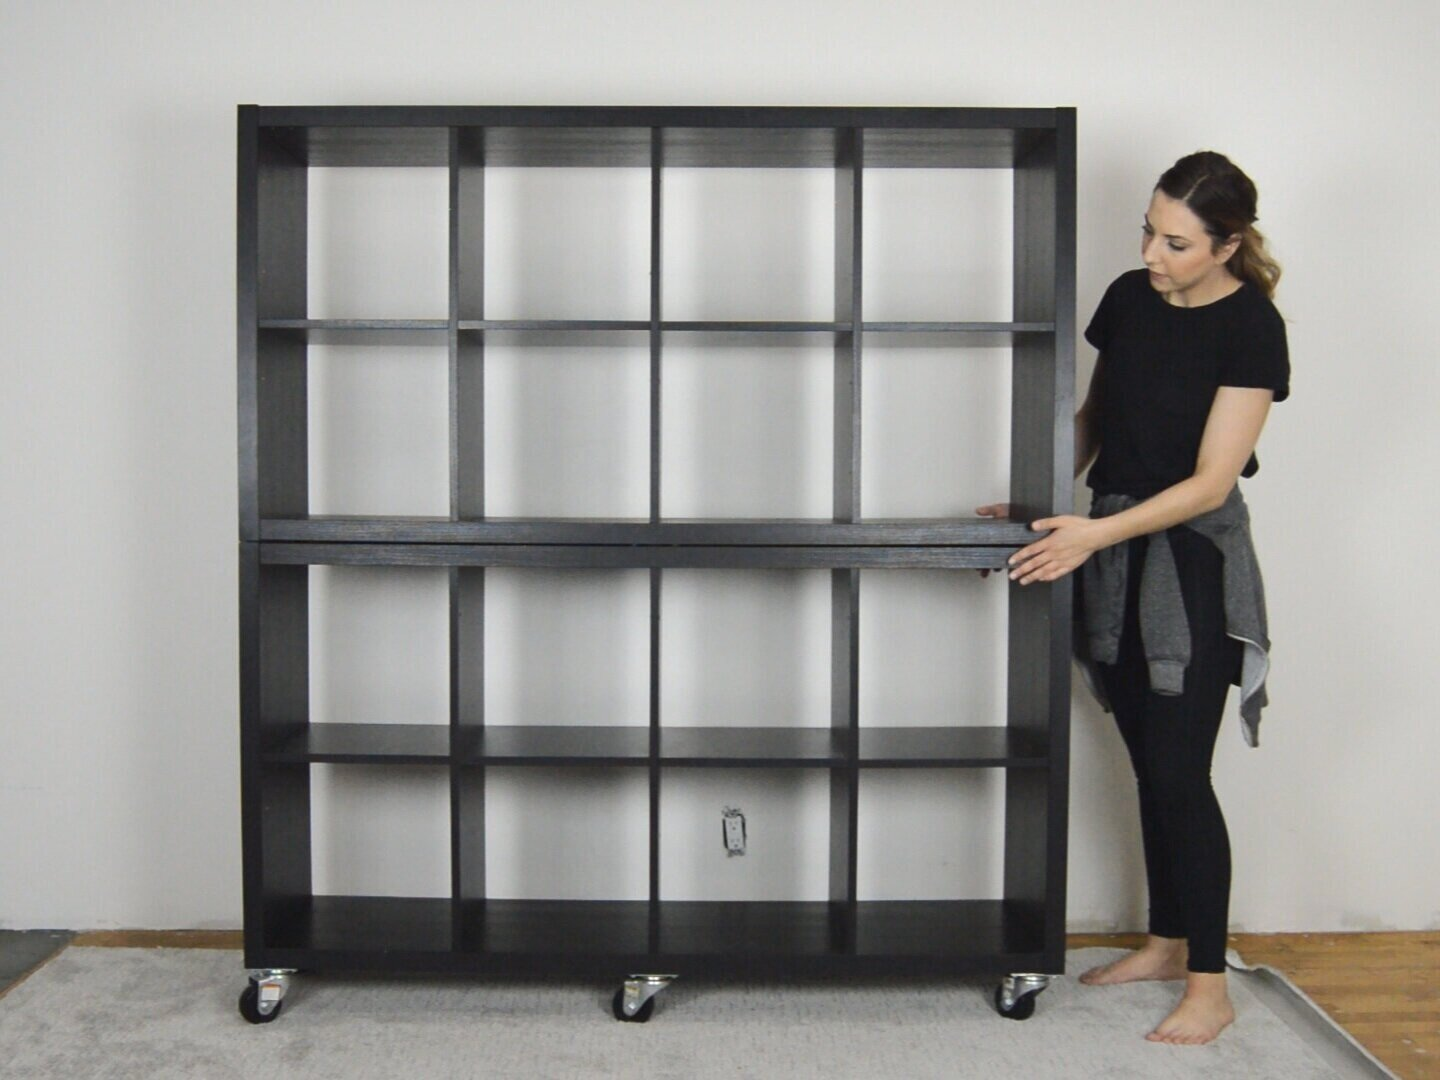 Ikea+Hack+DIY+Modern+Library+Card+File+Catalog+Cabinet+with+Drawers+using+Kallax+Shelf+Bookcase+by+The+Savvy+Heart